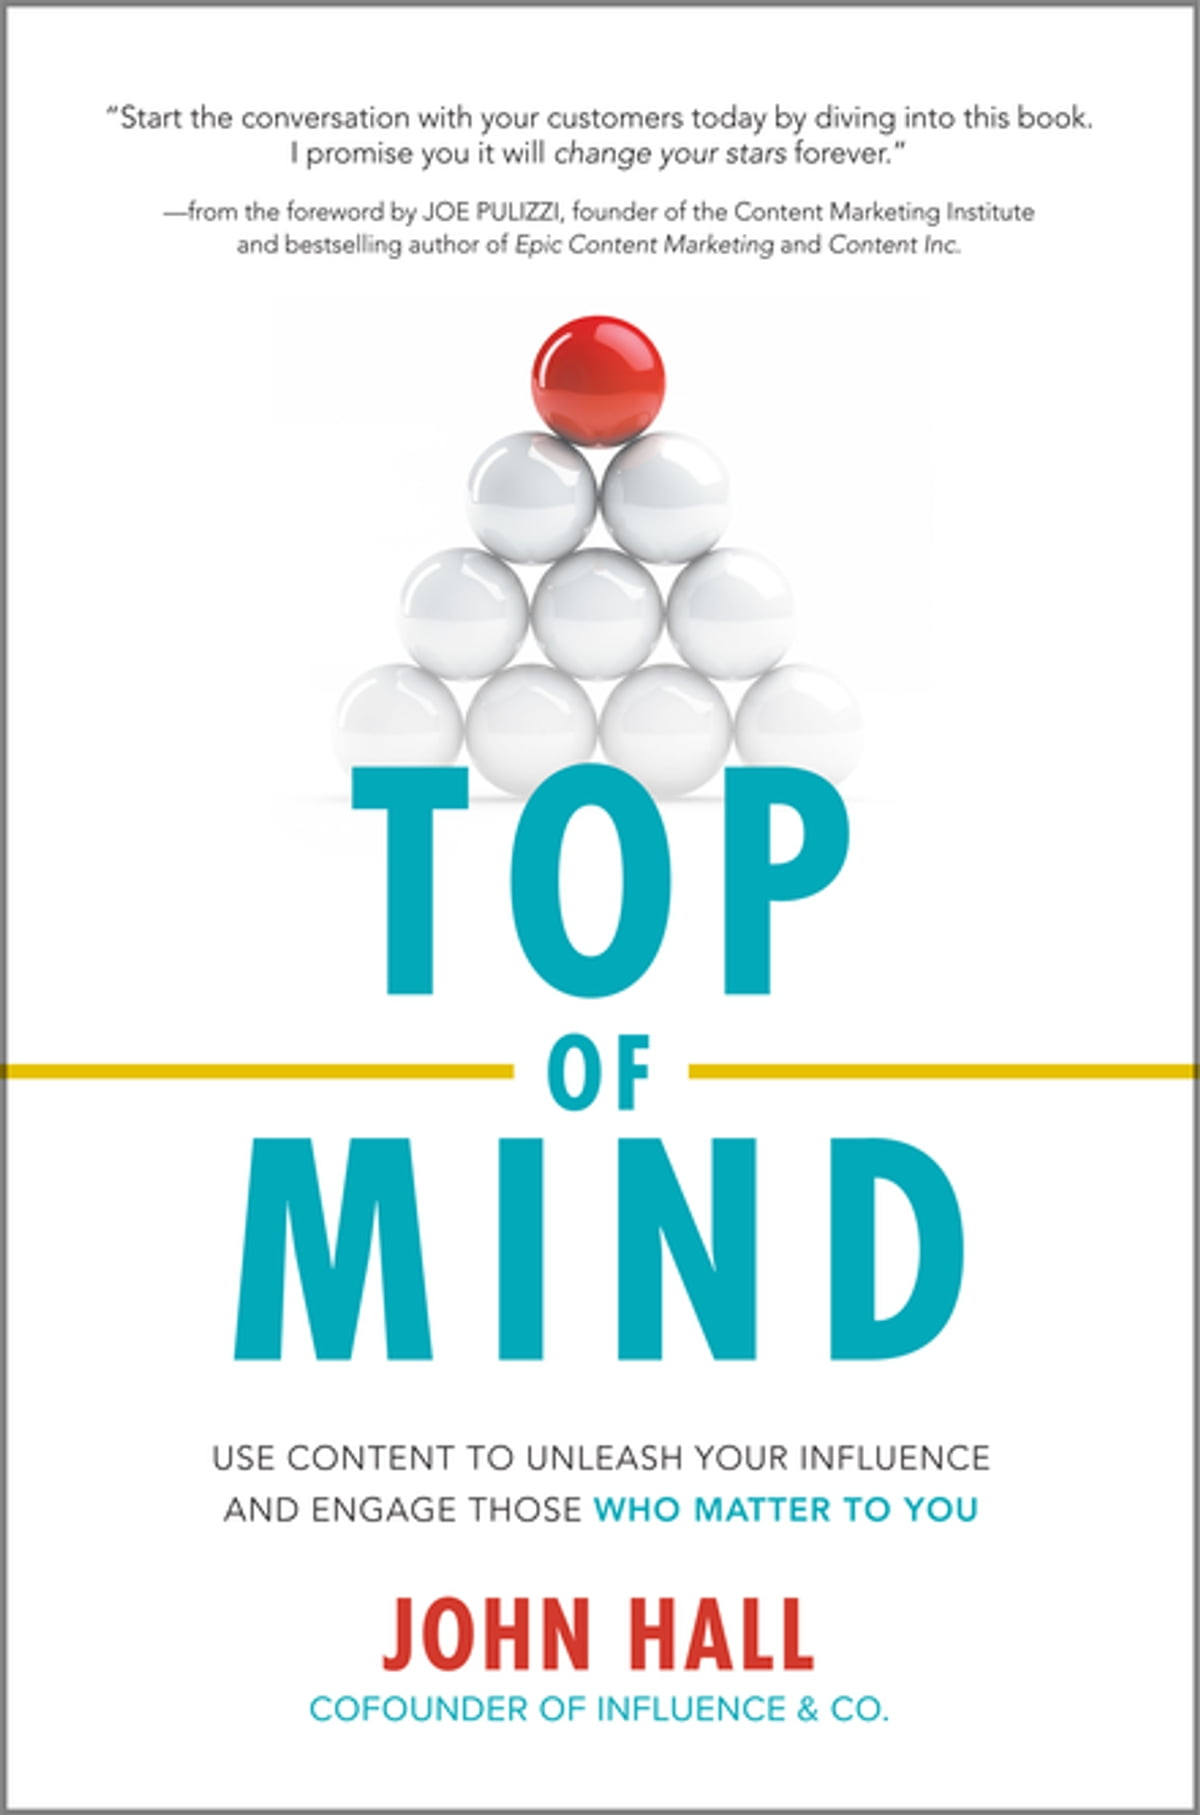 Top of Mind Use Content to Unleash Your Influence and Engage Those Who Matter To You